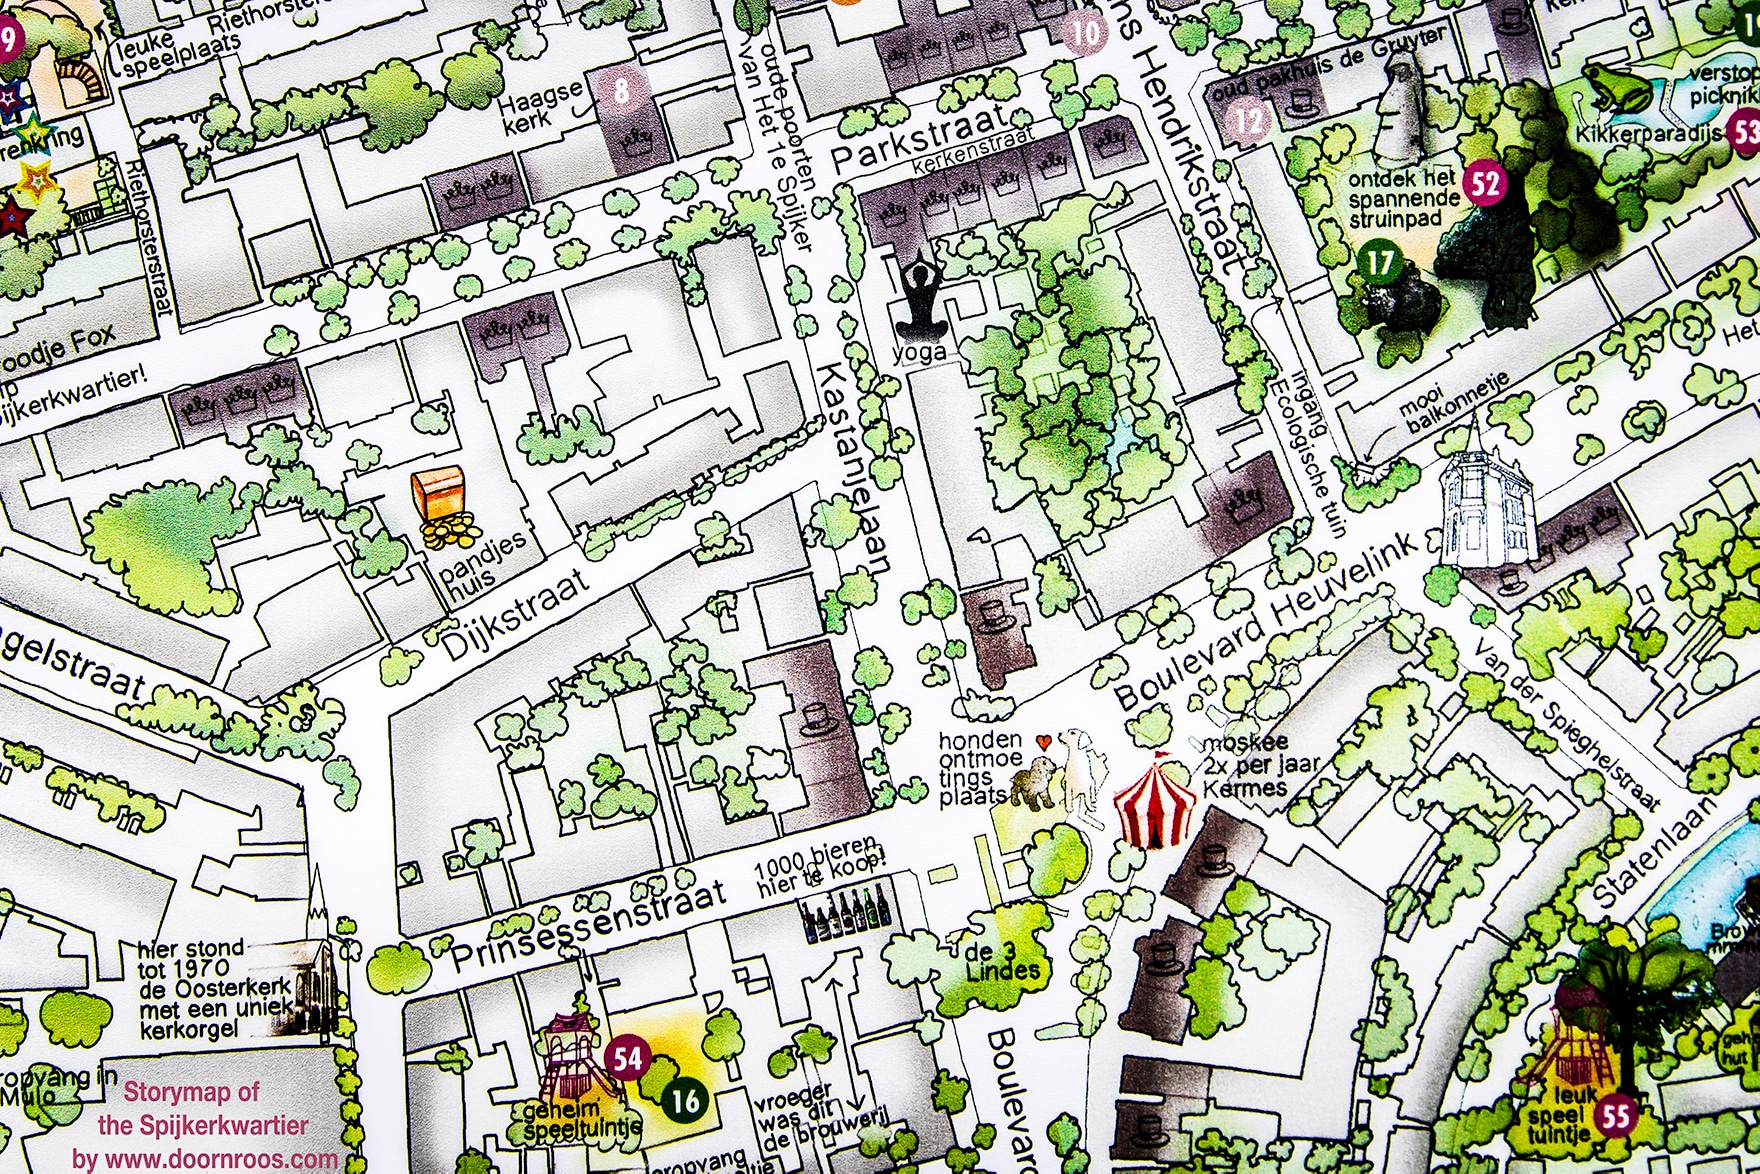 Storymap of the Spijkerkwartier by www.doornroos.com